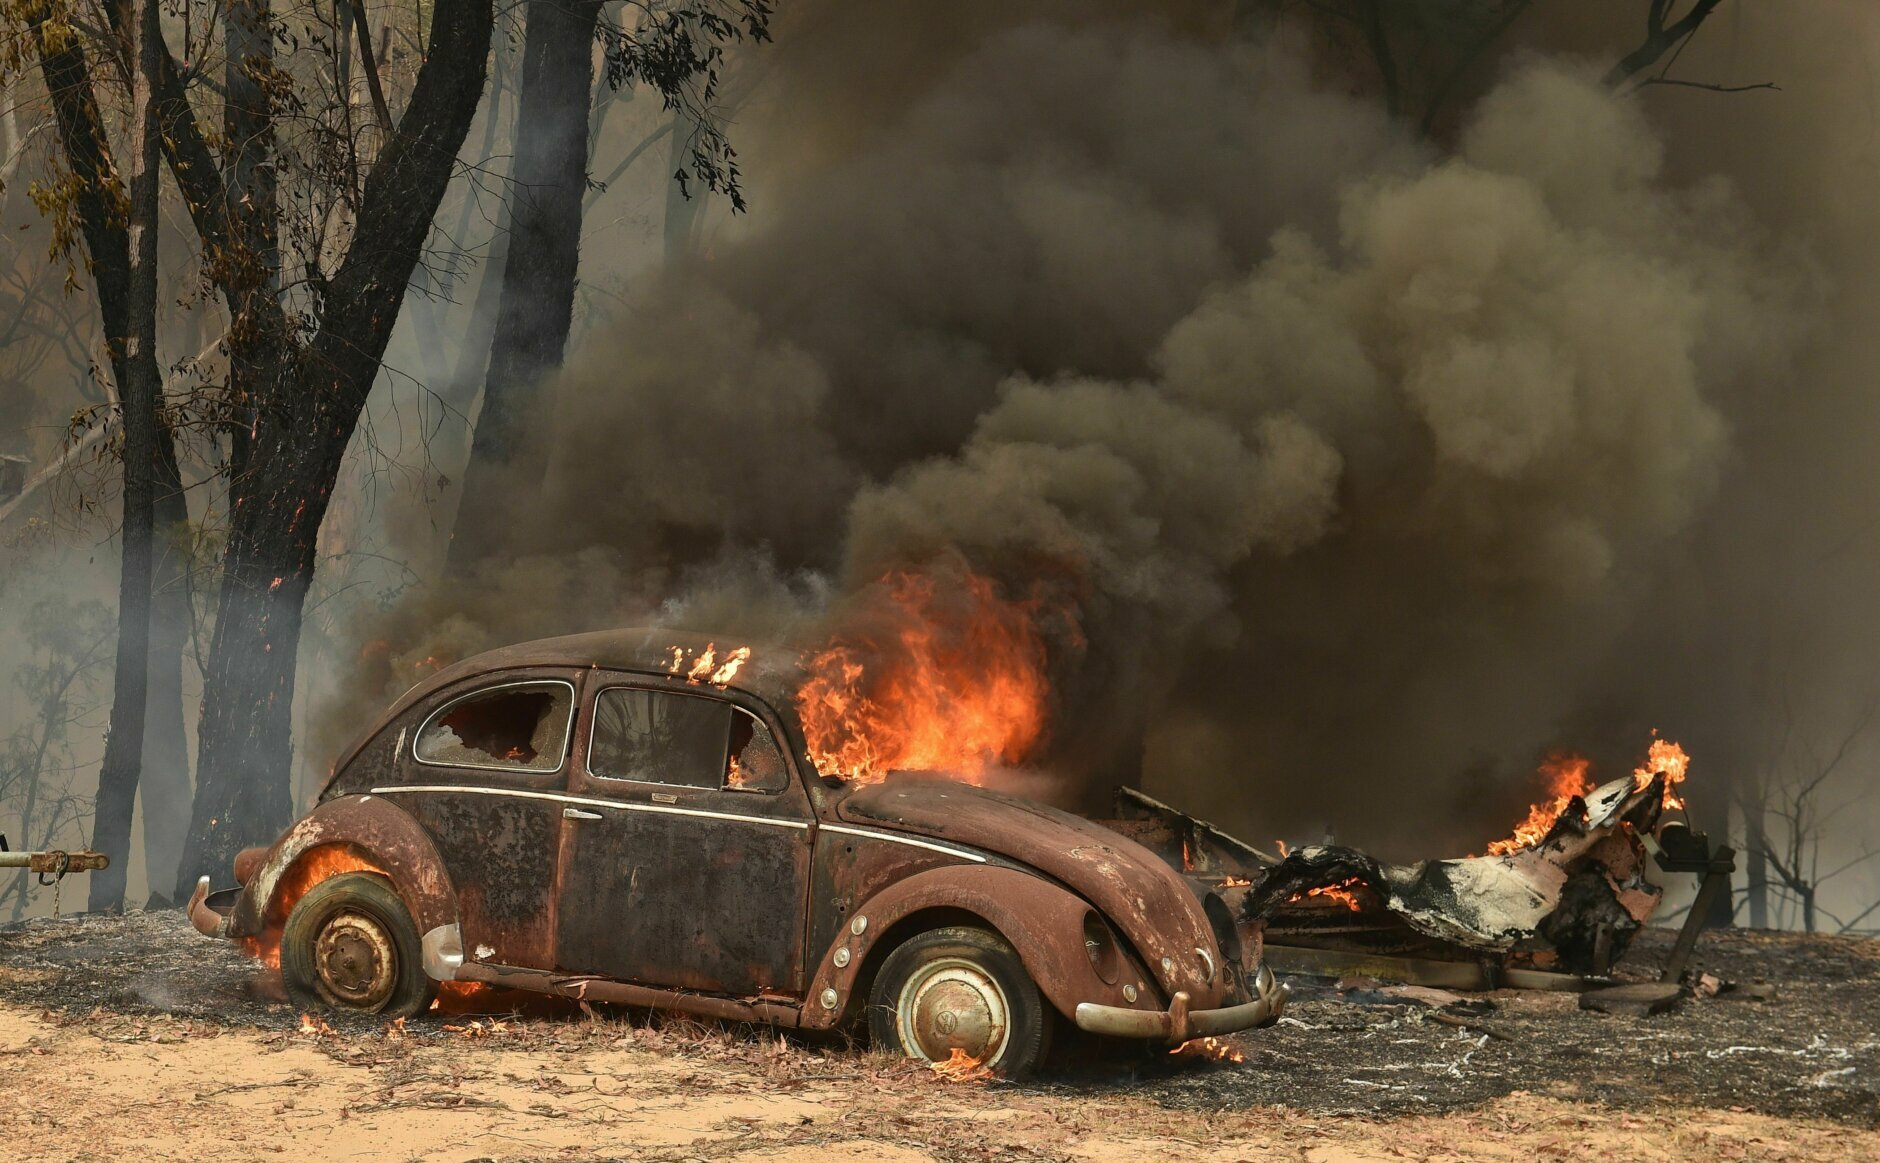 TOPSHOT - An old car burns from bushfires in Balmoral, 150 kilometres southwest of Sydney on December 19, 2019. - A state of emergency was declared in Australia's most populated region on December 19, as a record heat wave fanned unprecedented bushfires. (Photo by PETER PARKS / AFP) (Photo by PETER PARKS/AFP via Getty Images)